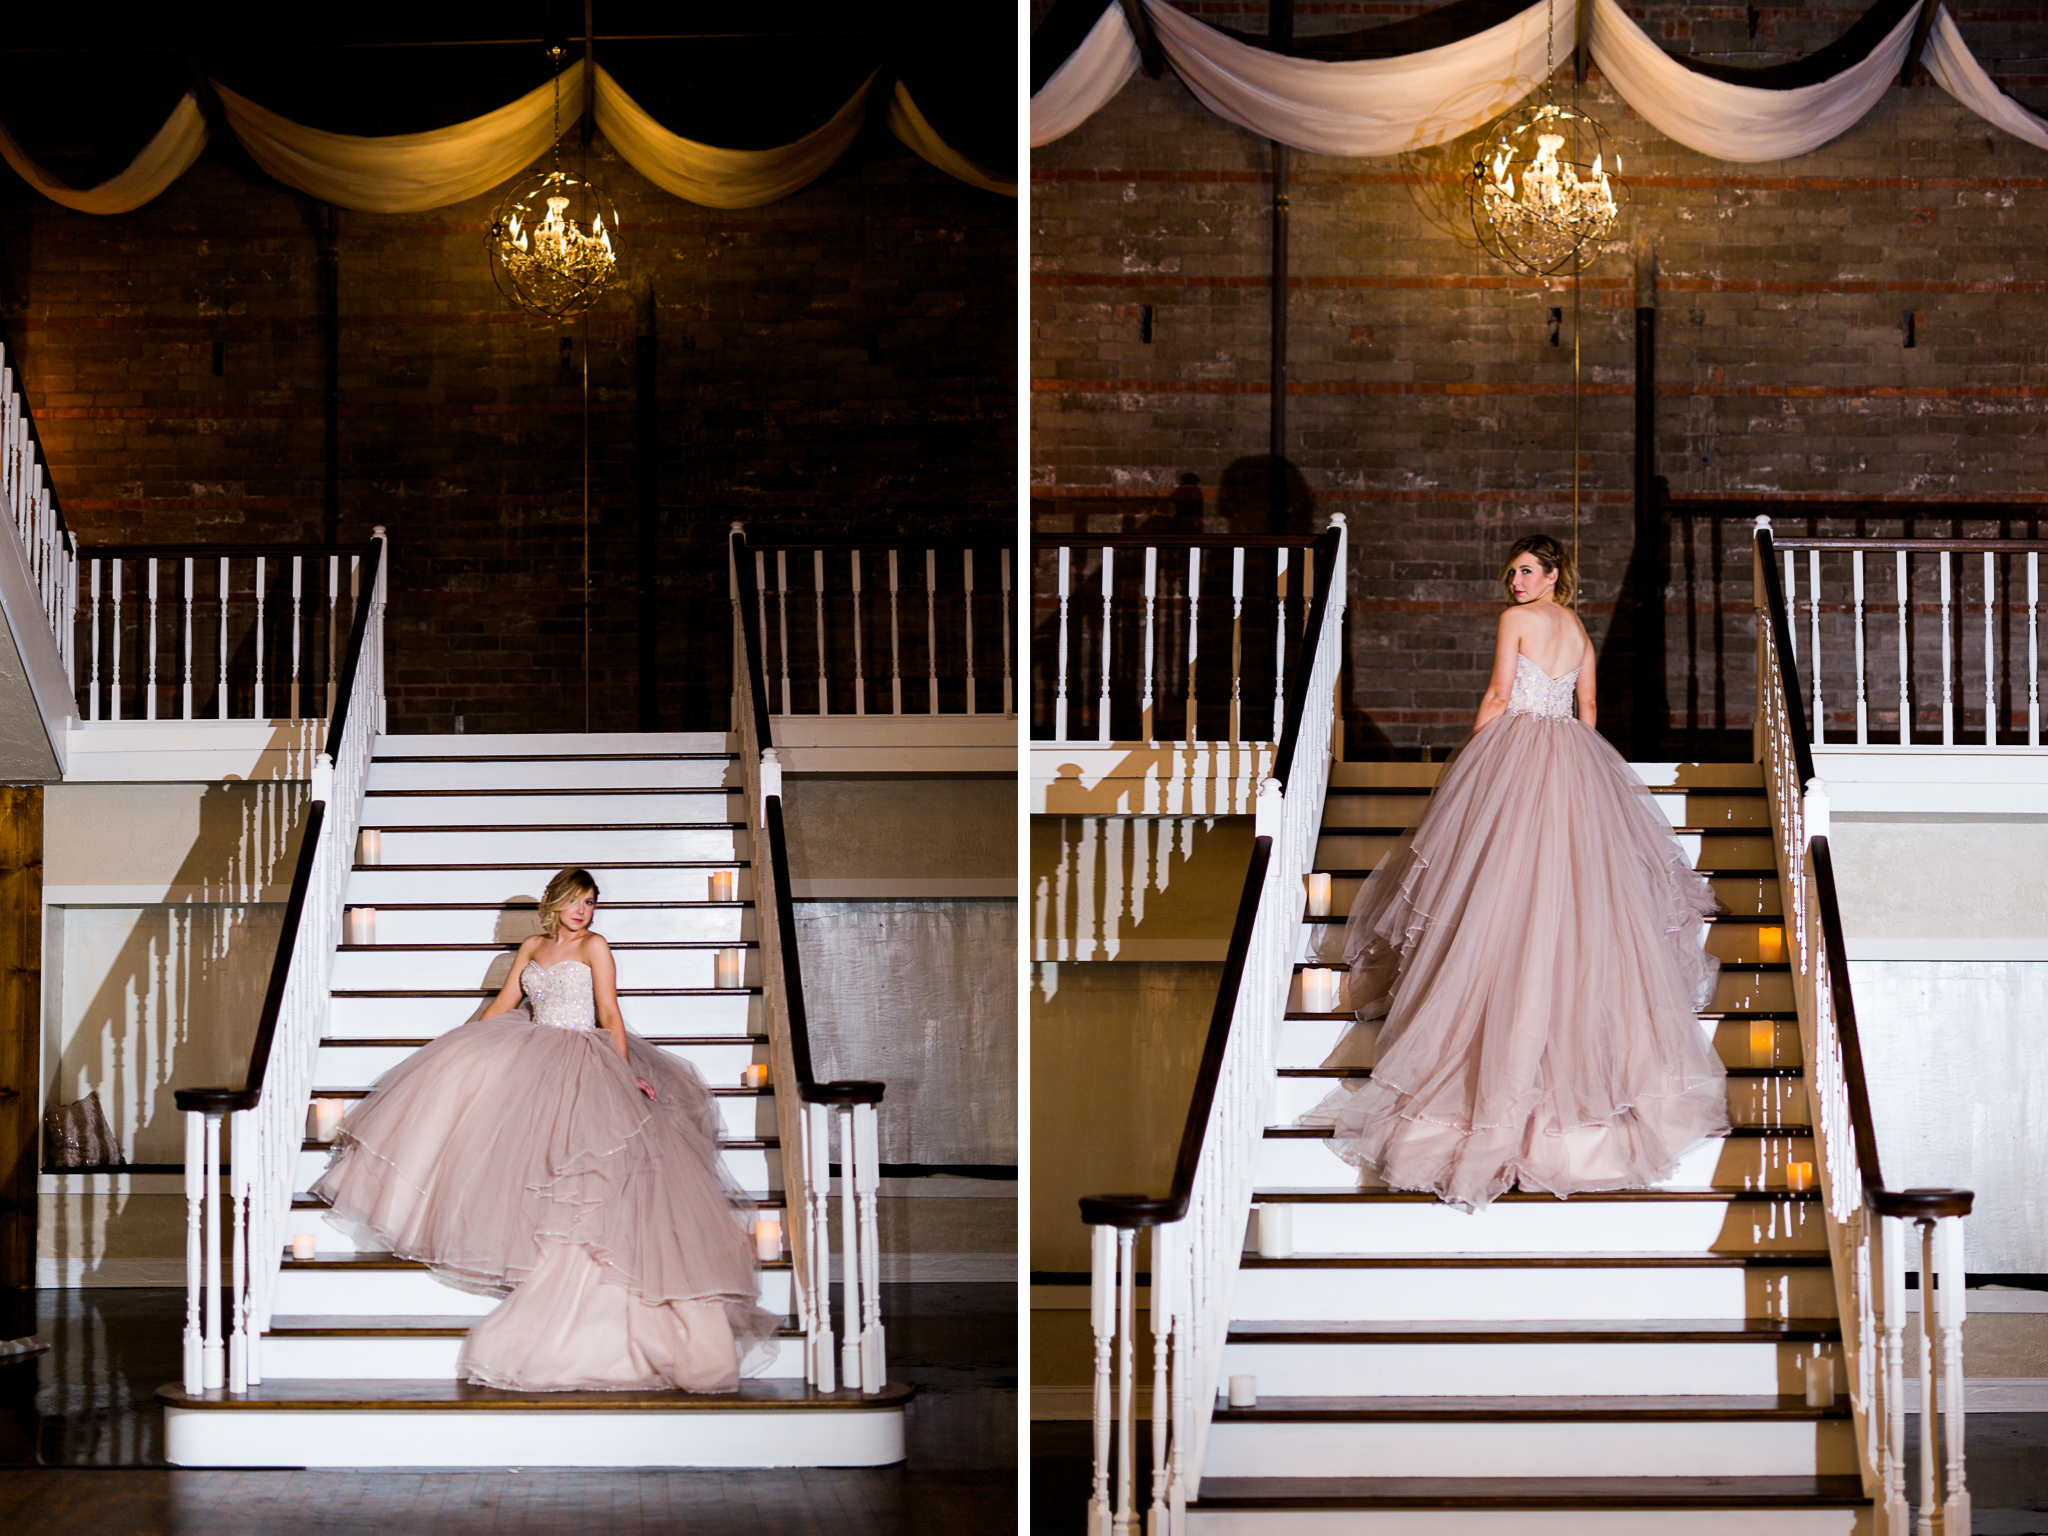 The Grand Canadian Theater OKC Purcell Wedding Venue Ashley Porton Photography justin alexander blush gown moliere bridal.jpg